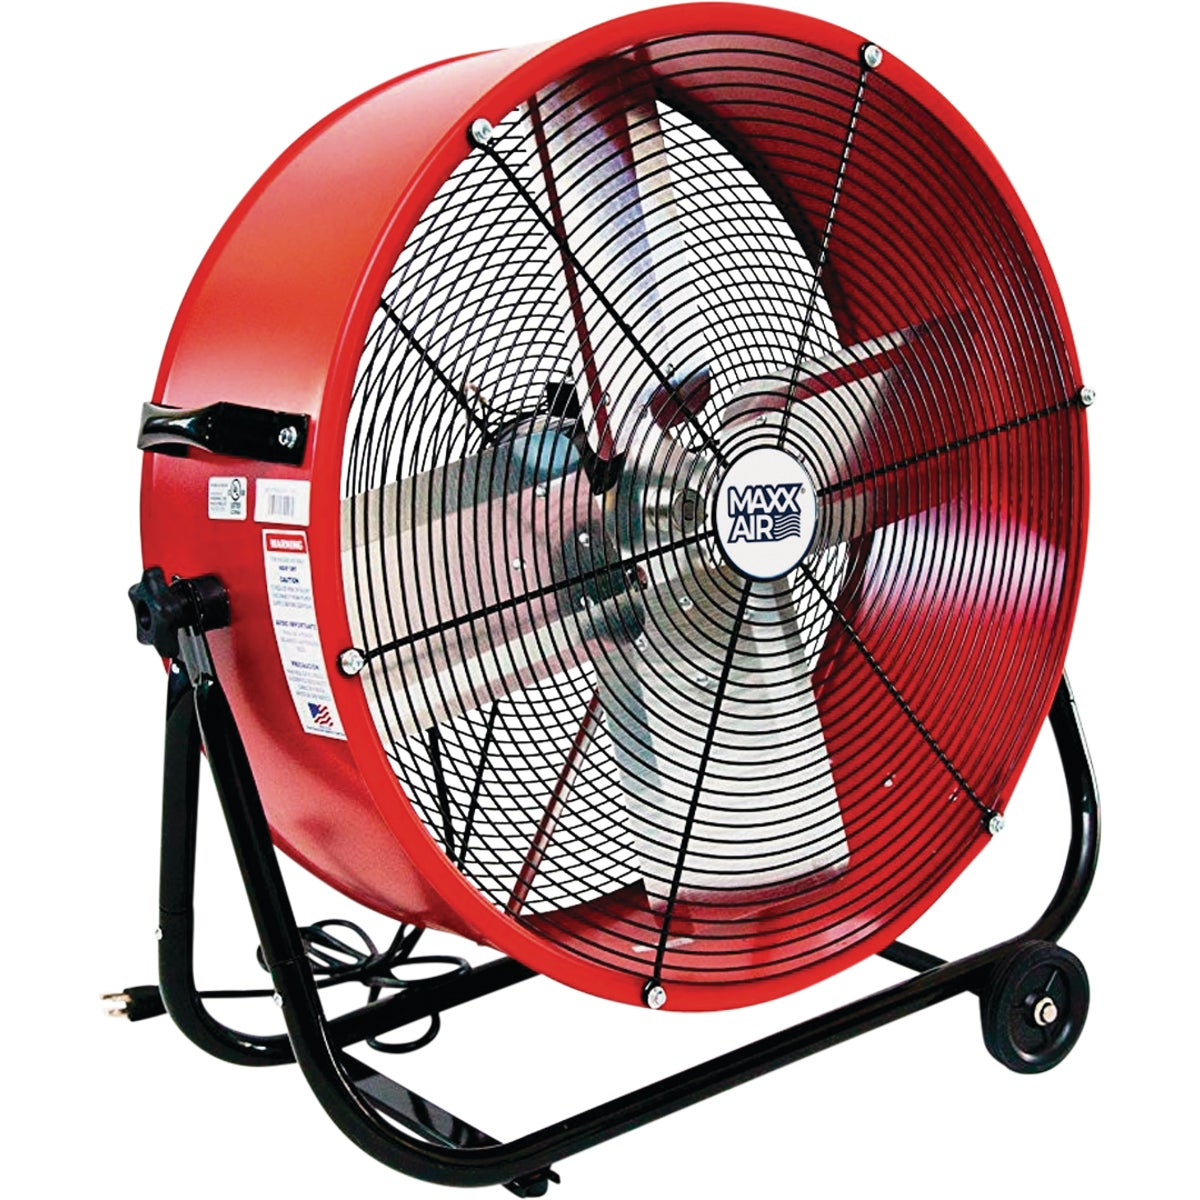 Ventamatic Maxx Air Drum Fan, BF24TF YEL